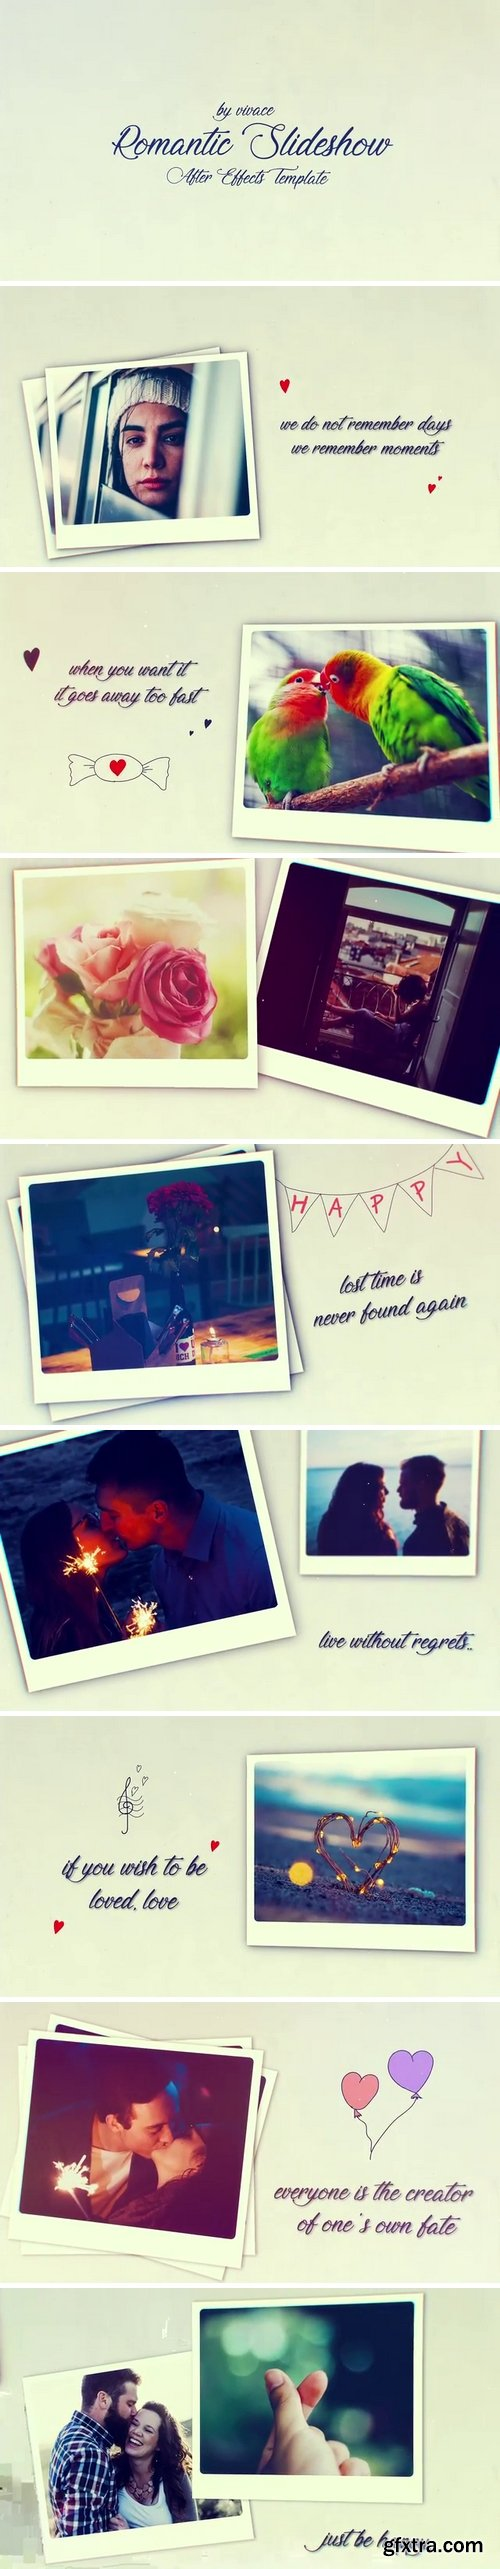 MotionArray - Romantic Slideshow After Effects Templates 159002